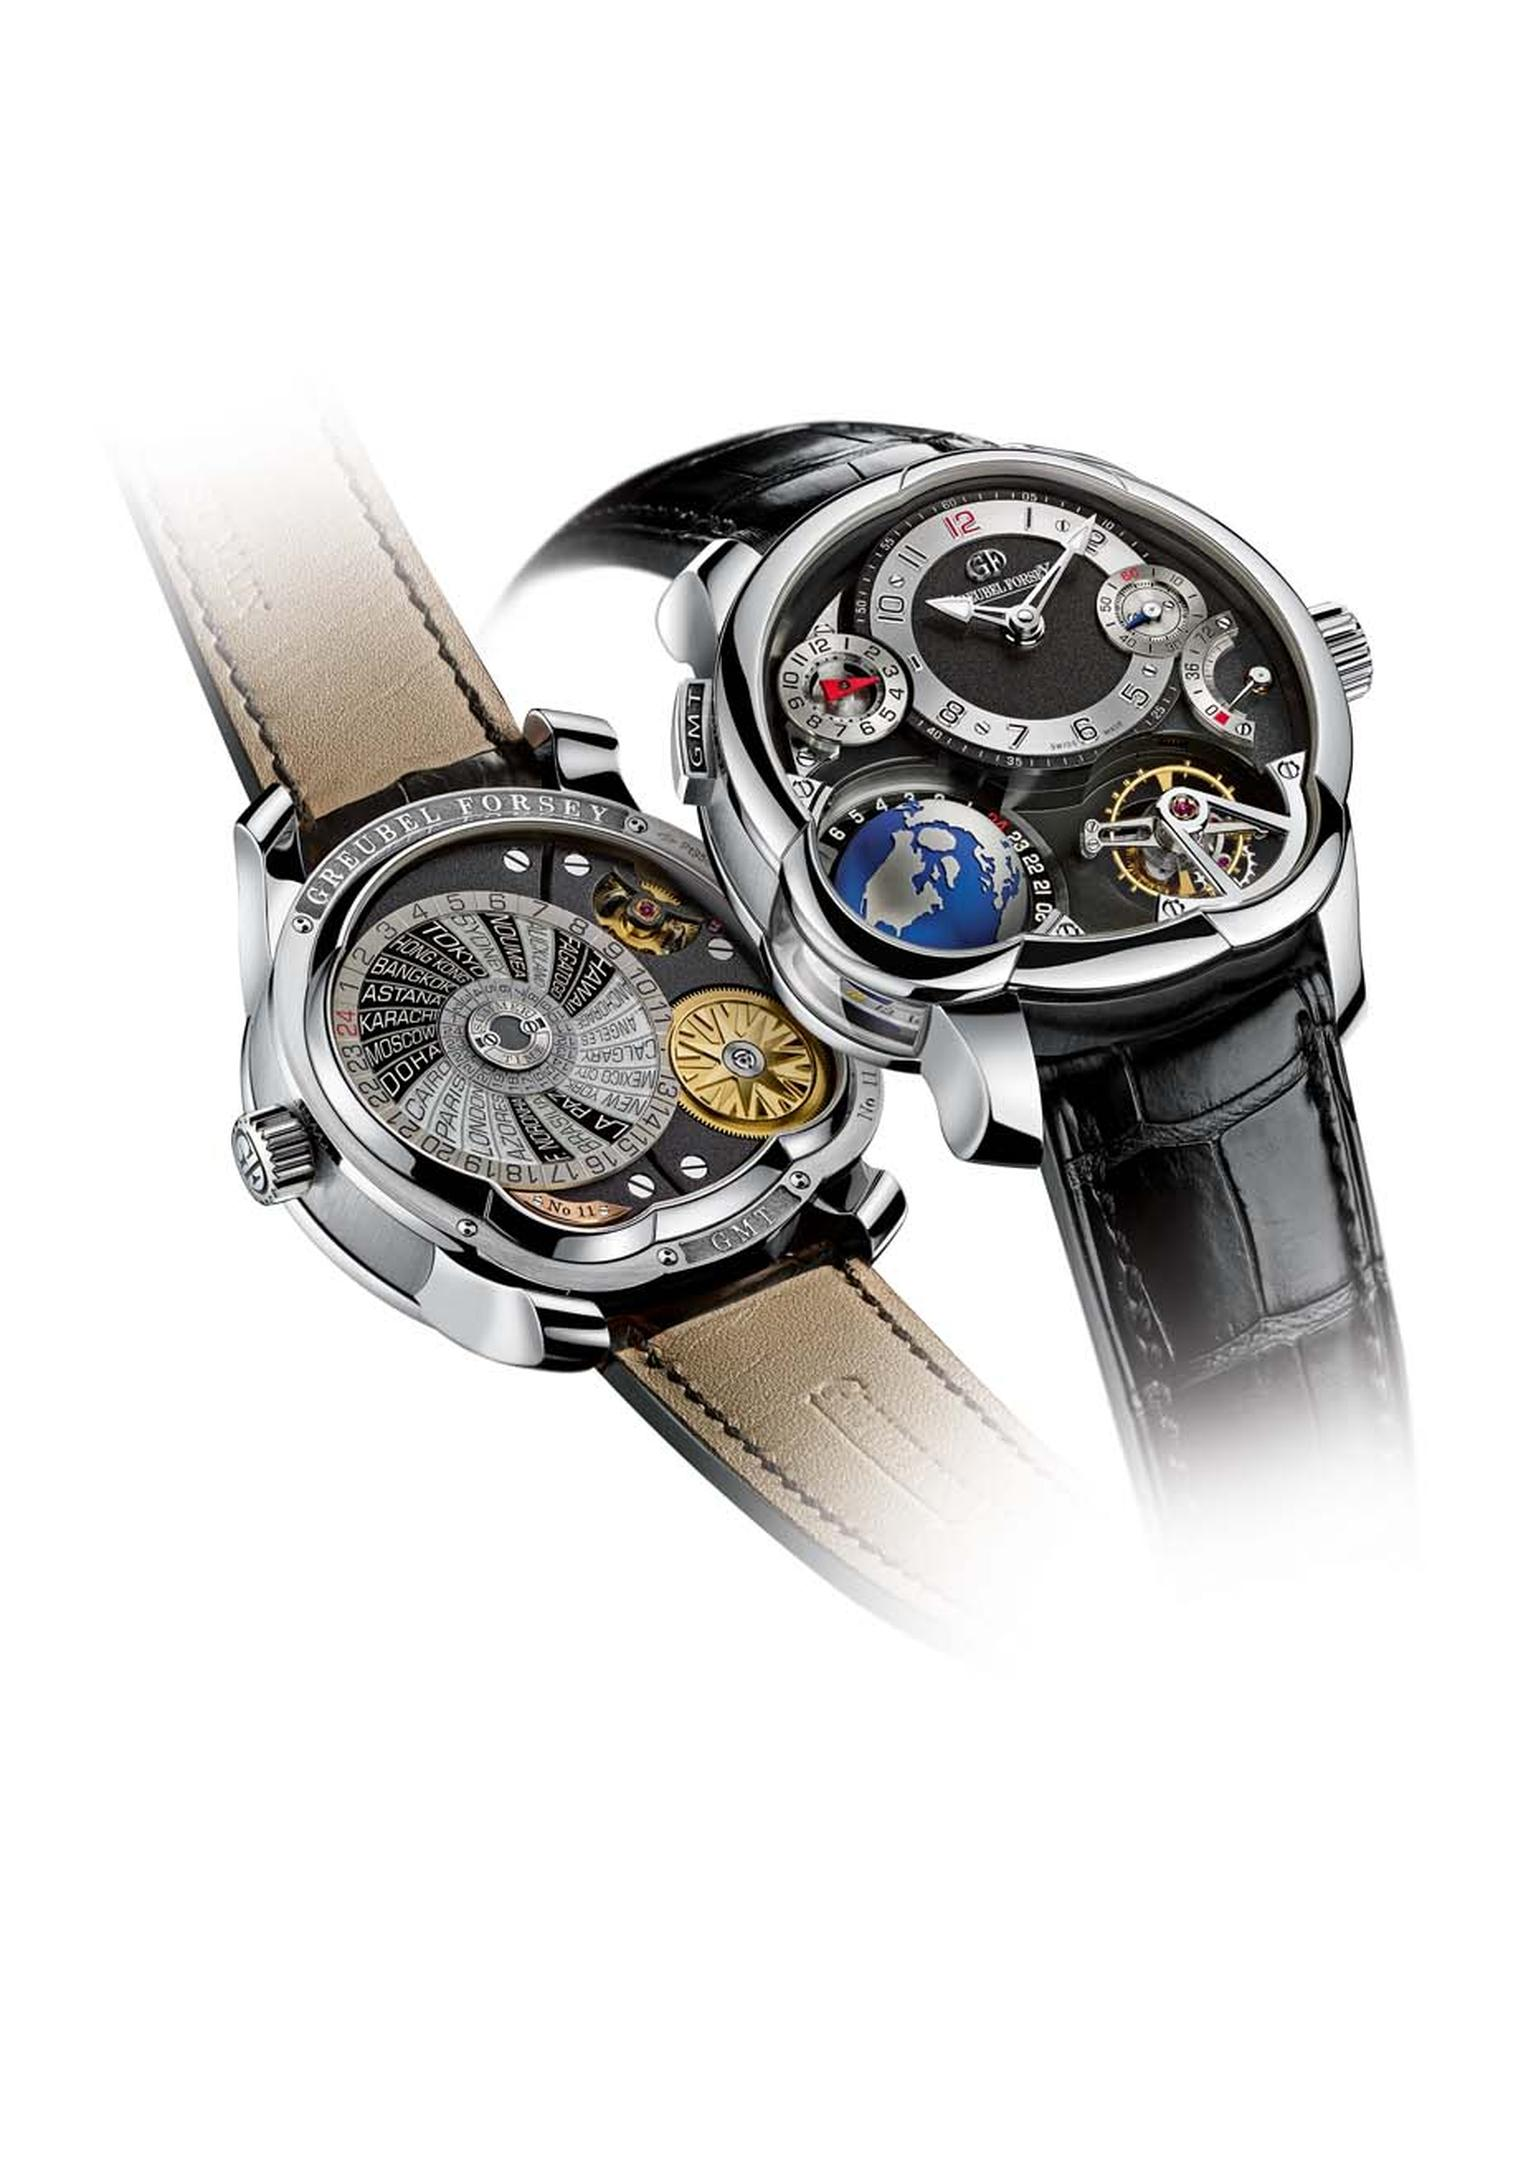 Greubel Forsey will be launching its superlative 2011 GMT model in a new platinum case at the SIHH 2014 in Geneva.